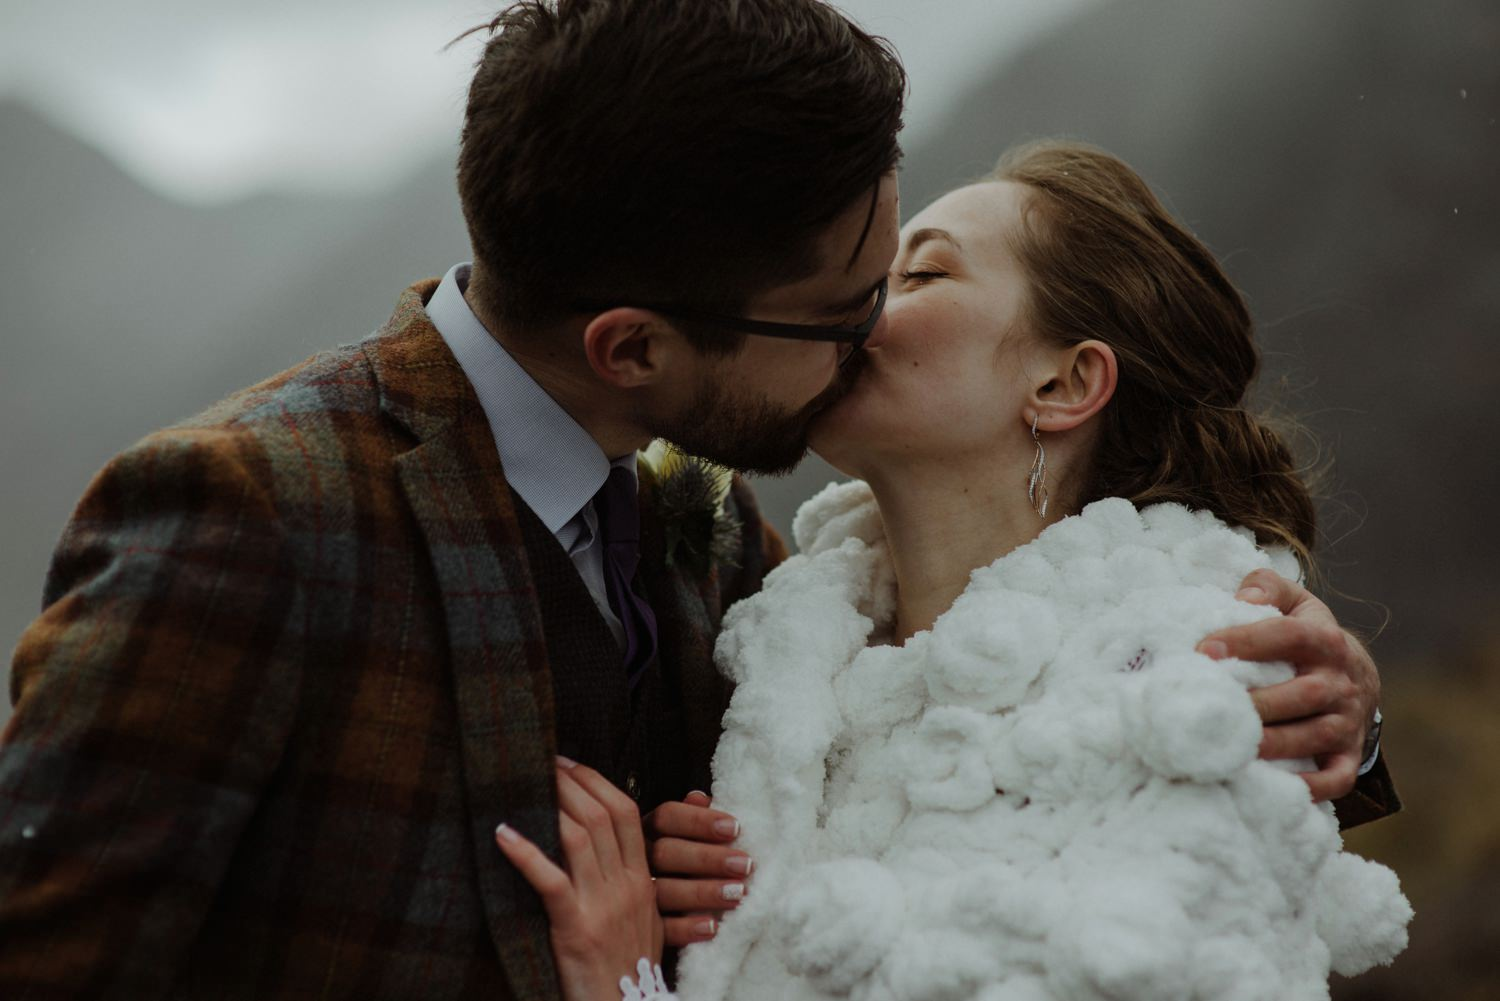 lsle of Skye elopement photographer_0502